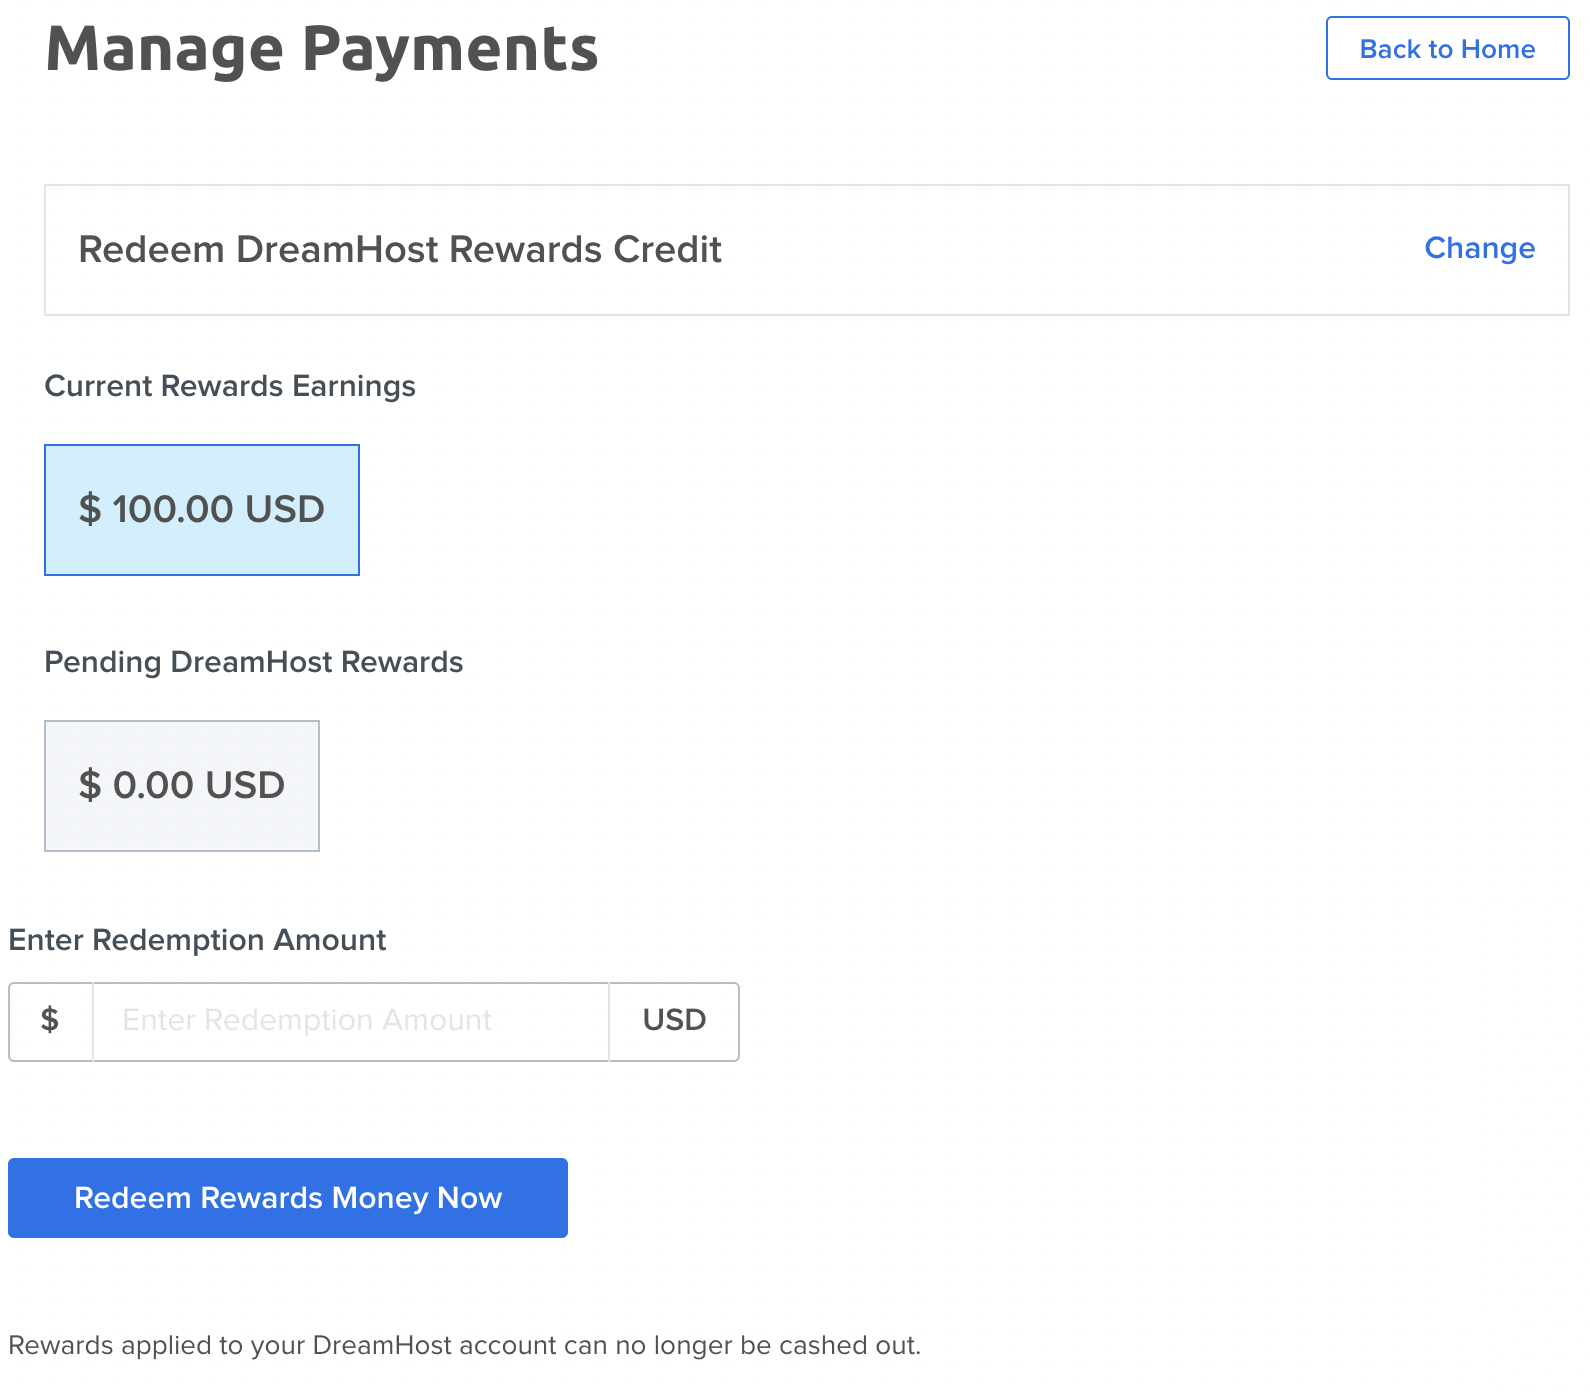 panel-manage-payments-options-11.png